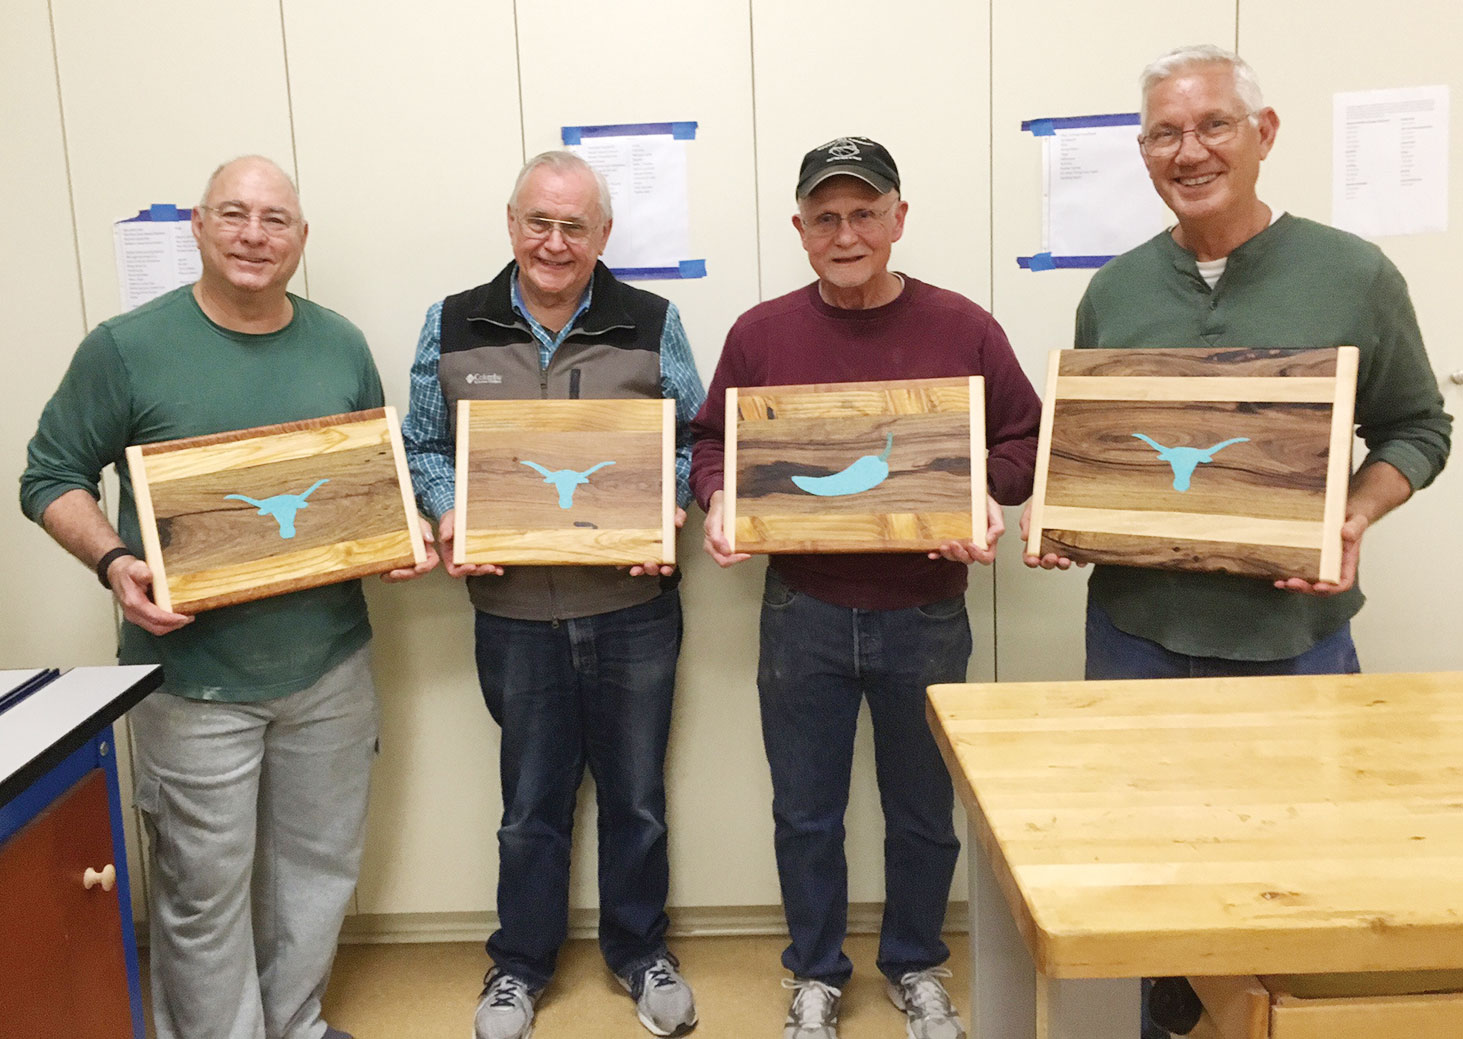 Inlay class members, left to right: Ken Arthur, Dick Remski, Bob Brannon and Larry Balich